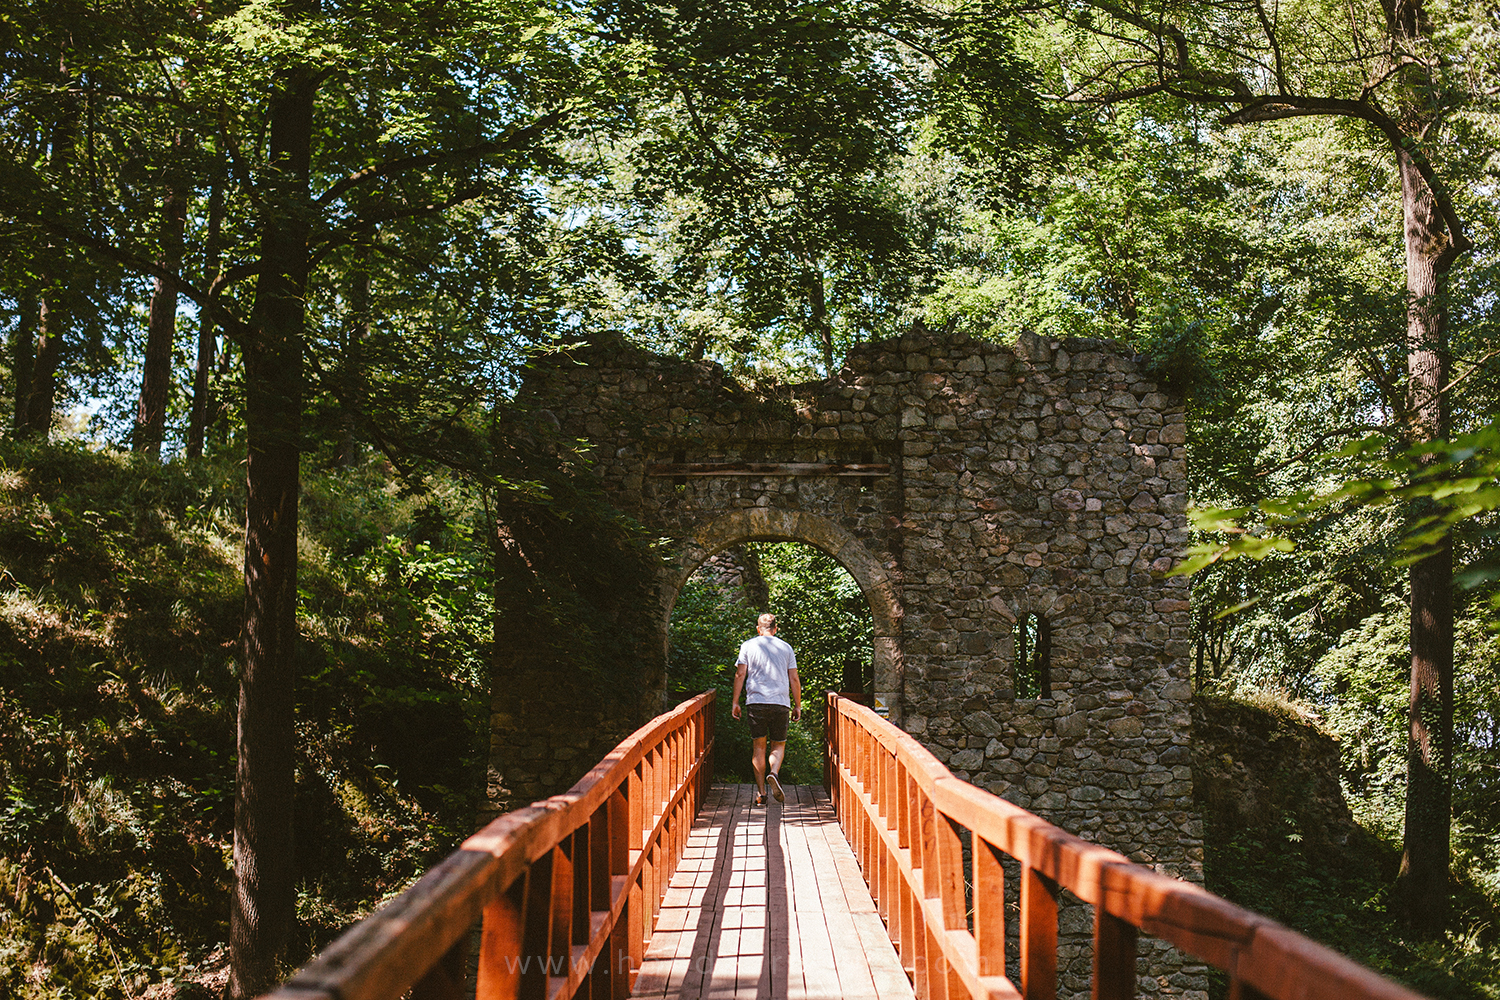 Zach walking towards ruins of Cisy Castle in South West Poland